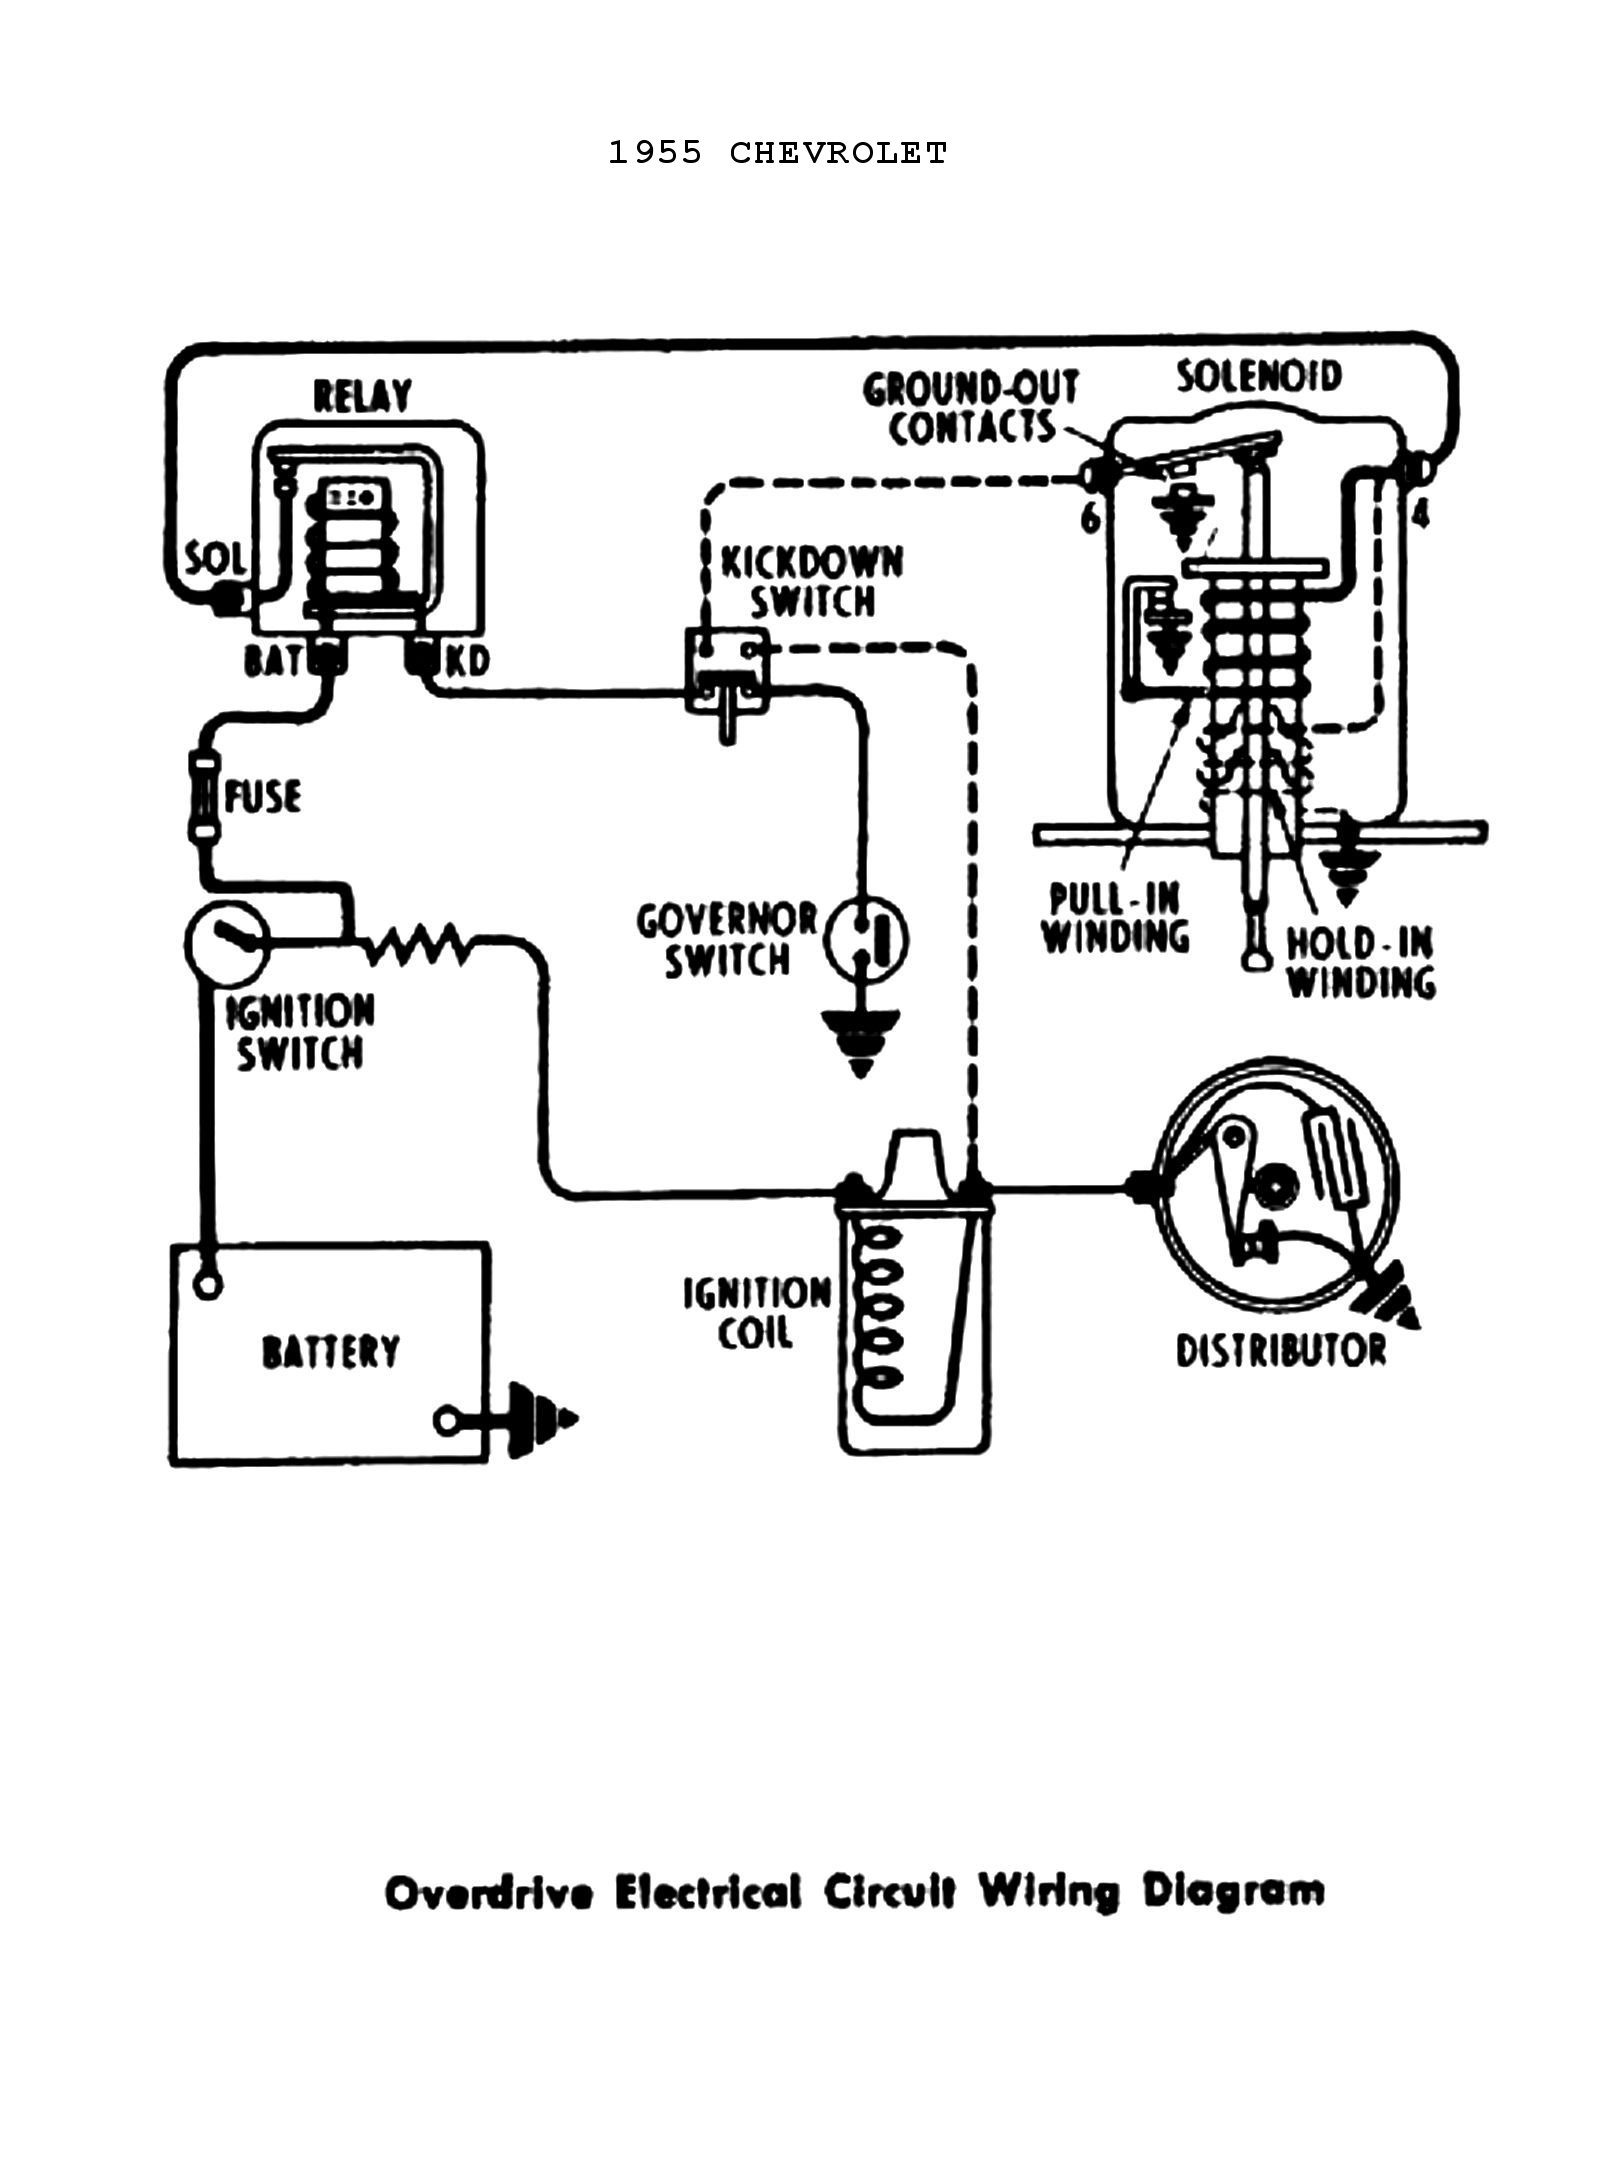 55odtrans1 chevy wiring diagrams typical ignition switch wiring diagram at reclaimingppi.co